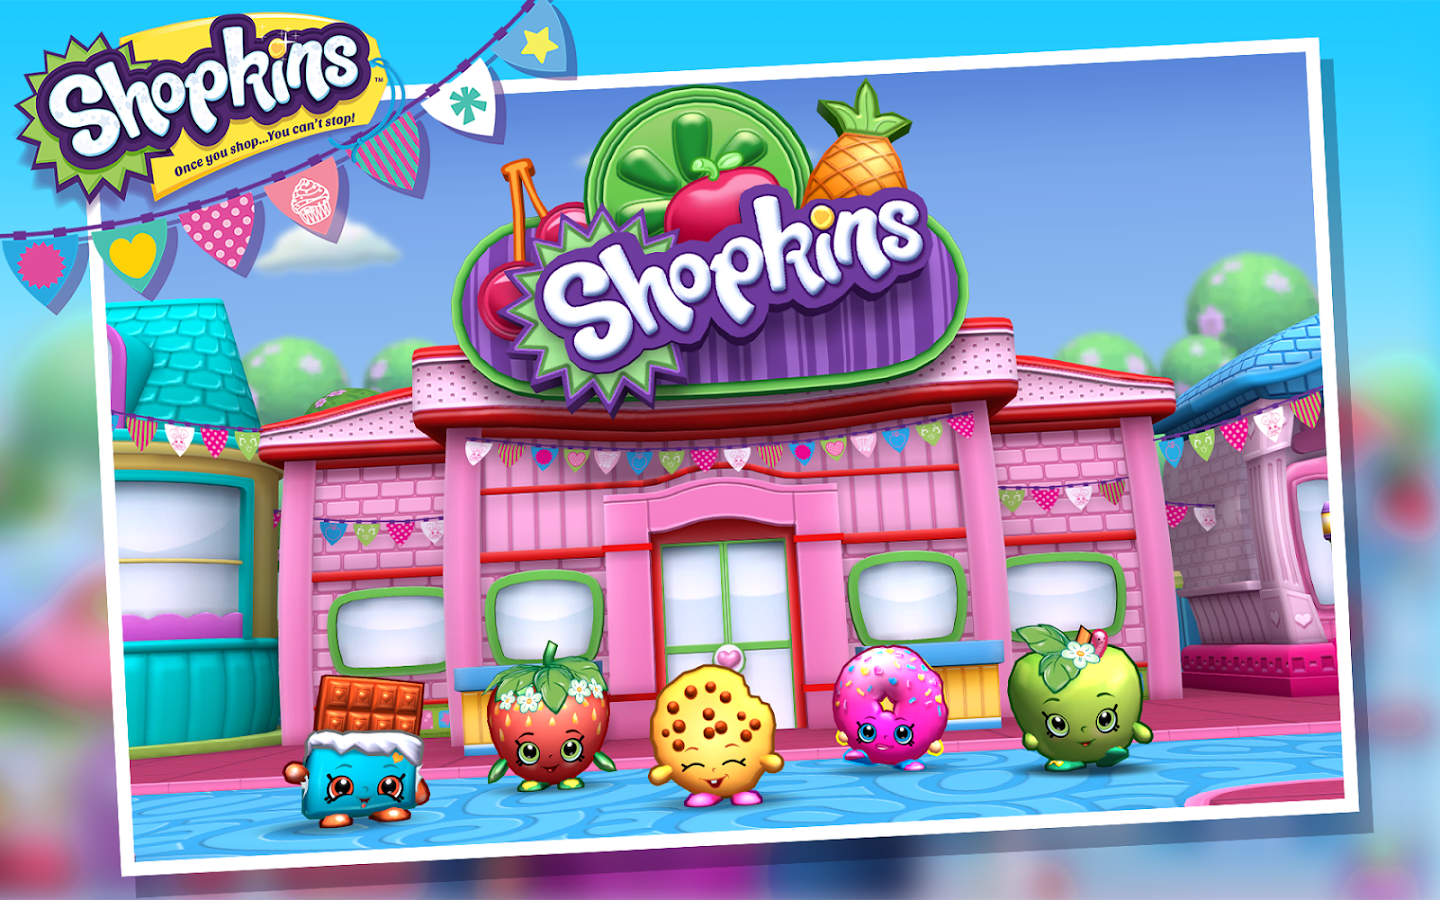 Shopkins world android apps on google play - Shopkins wallpaper ...